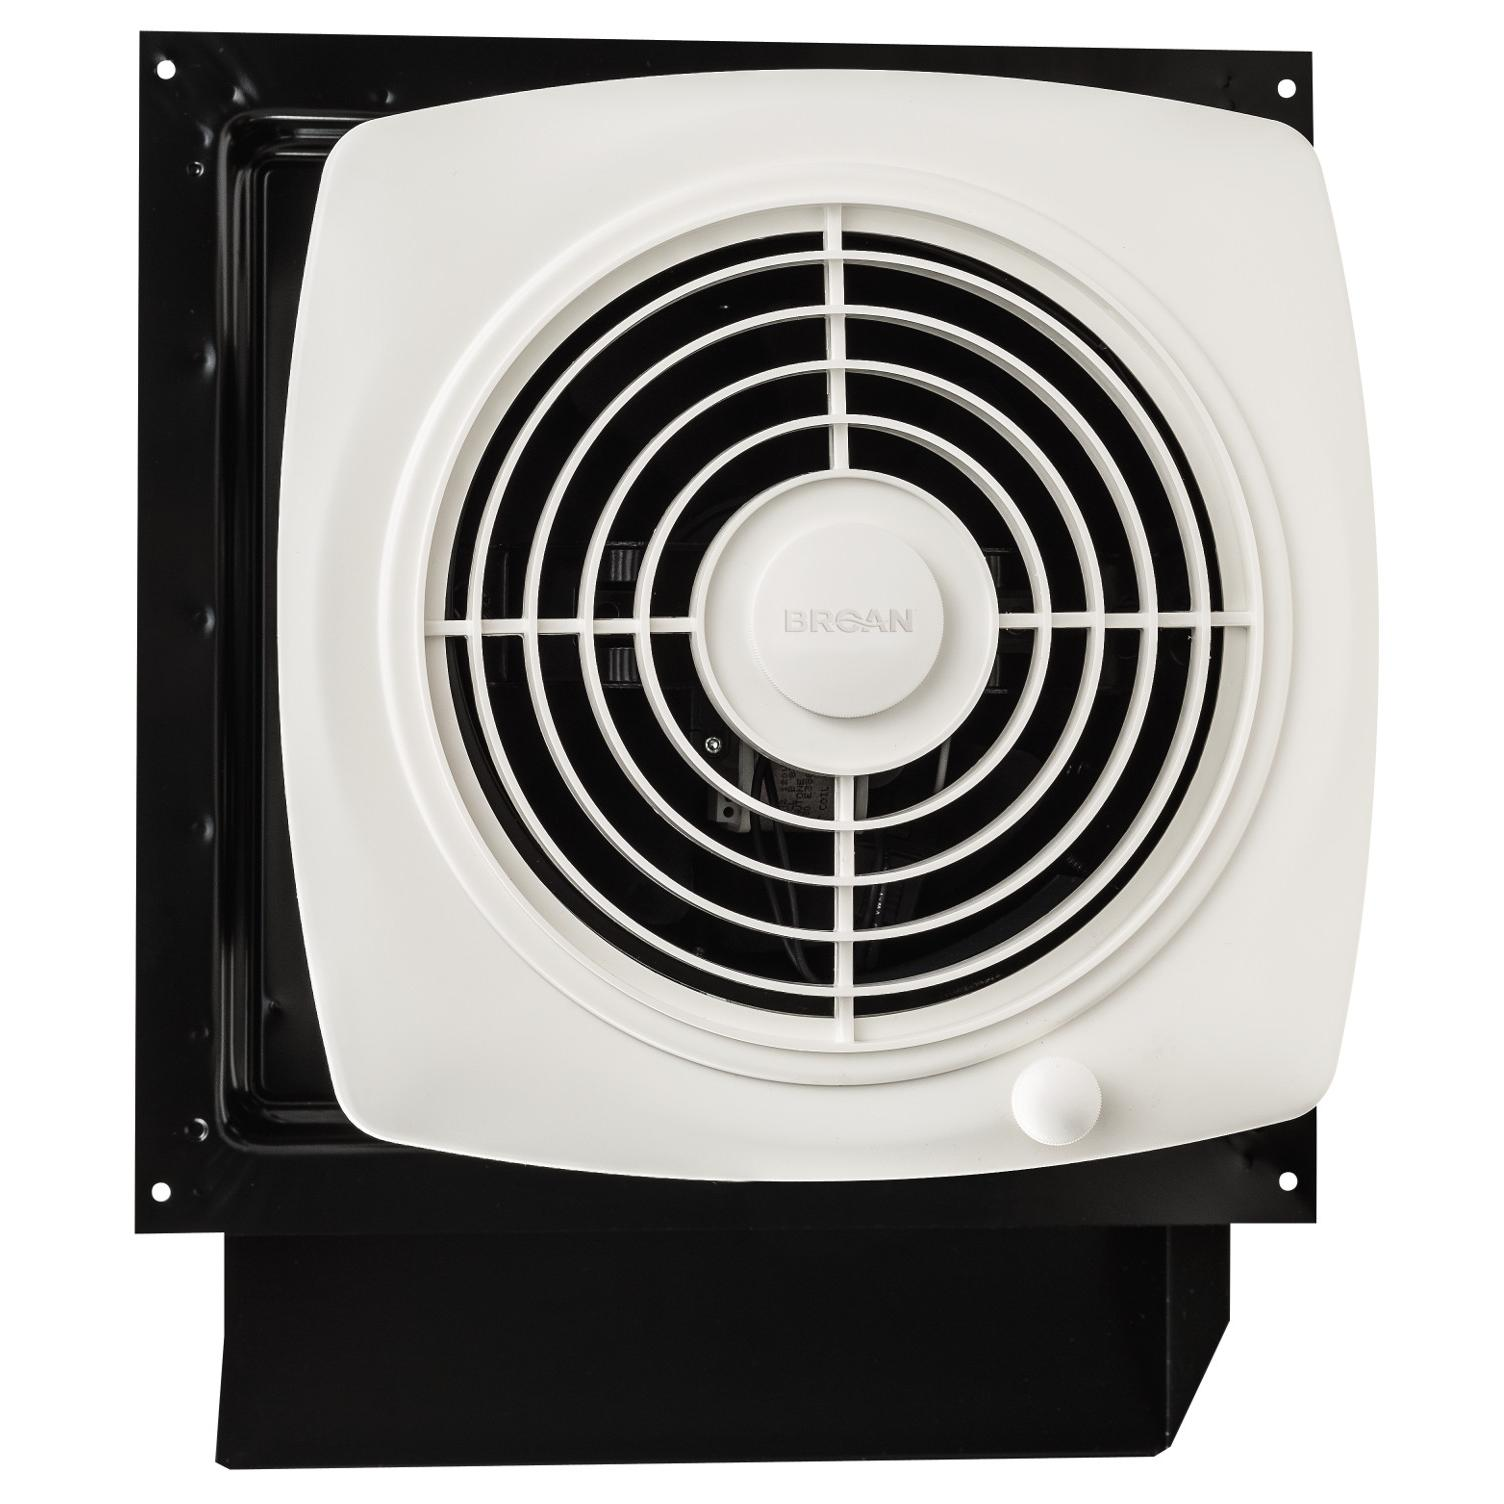 Bathroom Exhaust Fans Through Wall : Broan through wall fan cfm sones white